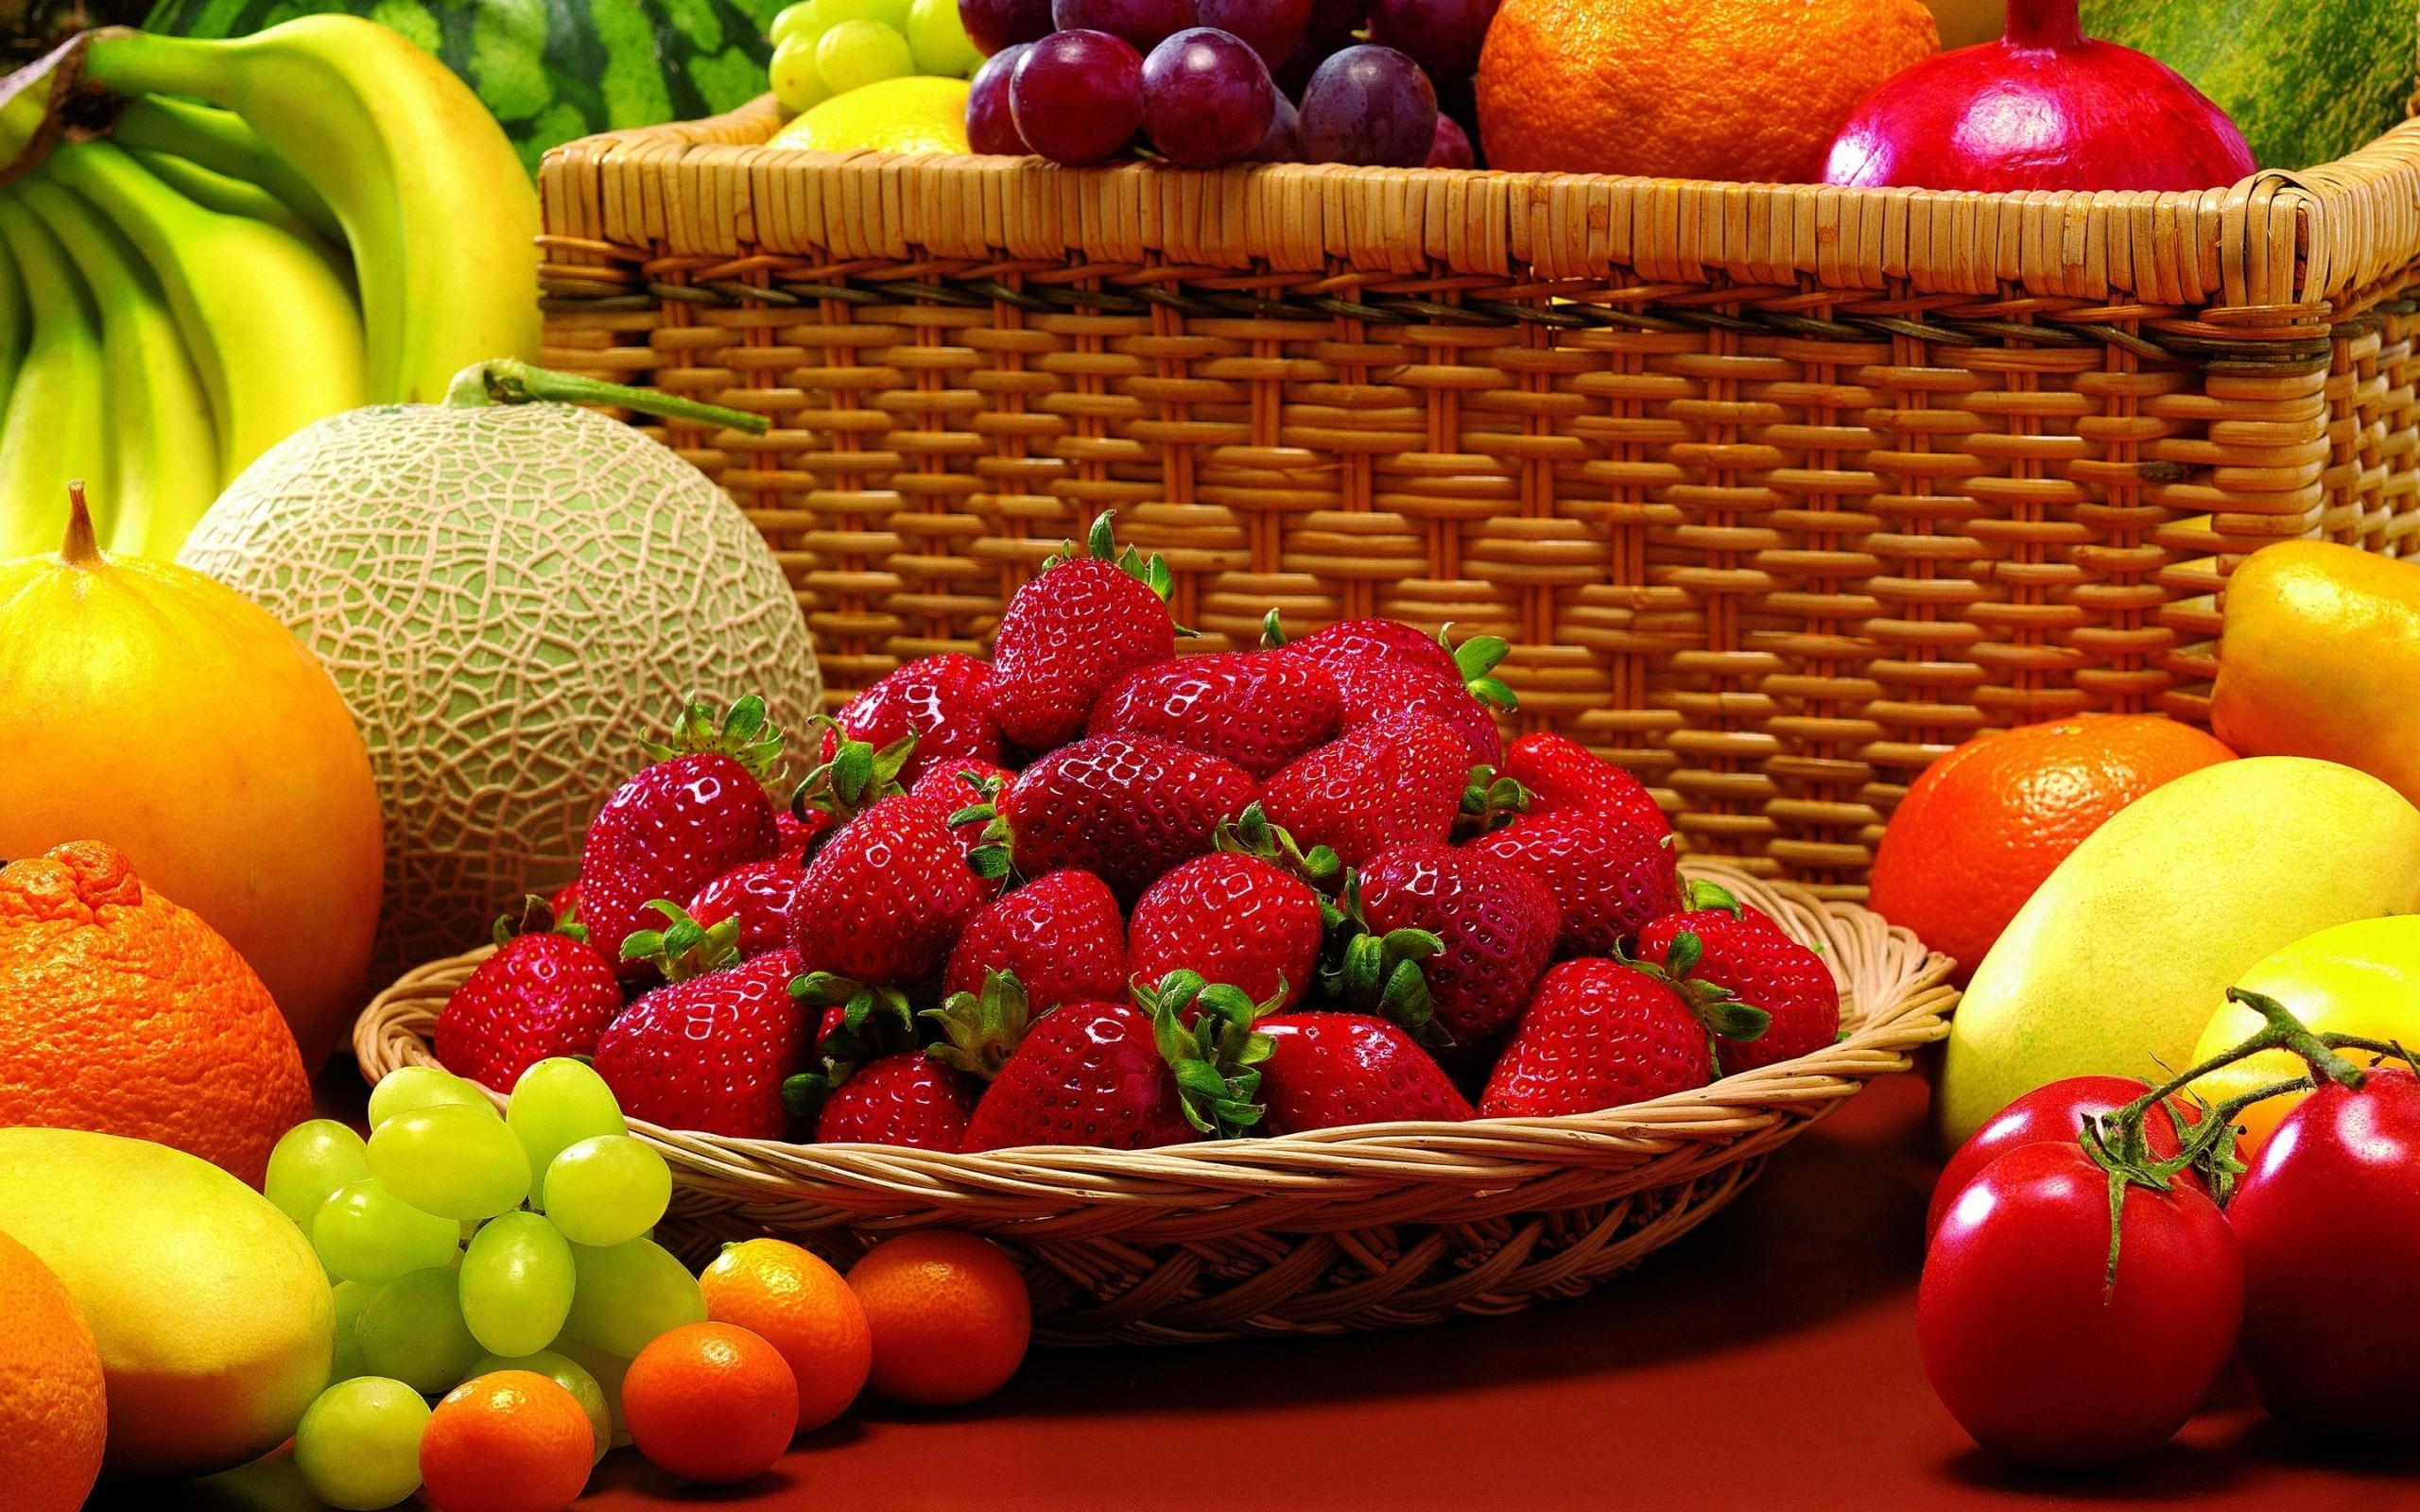 Wallpaper Fruits